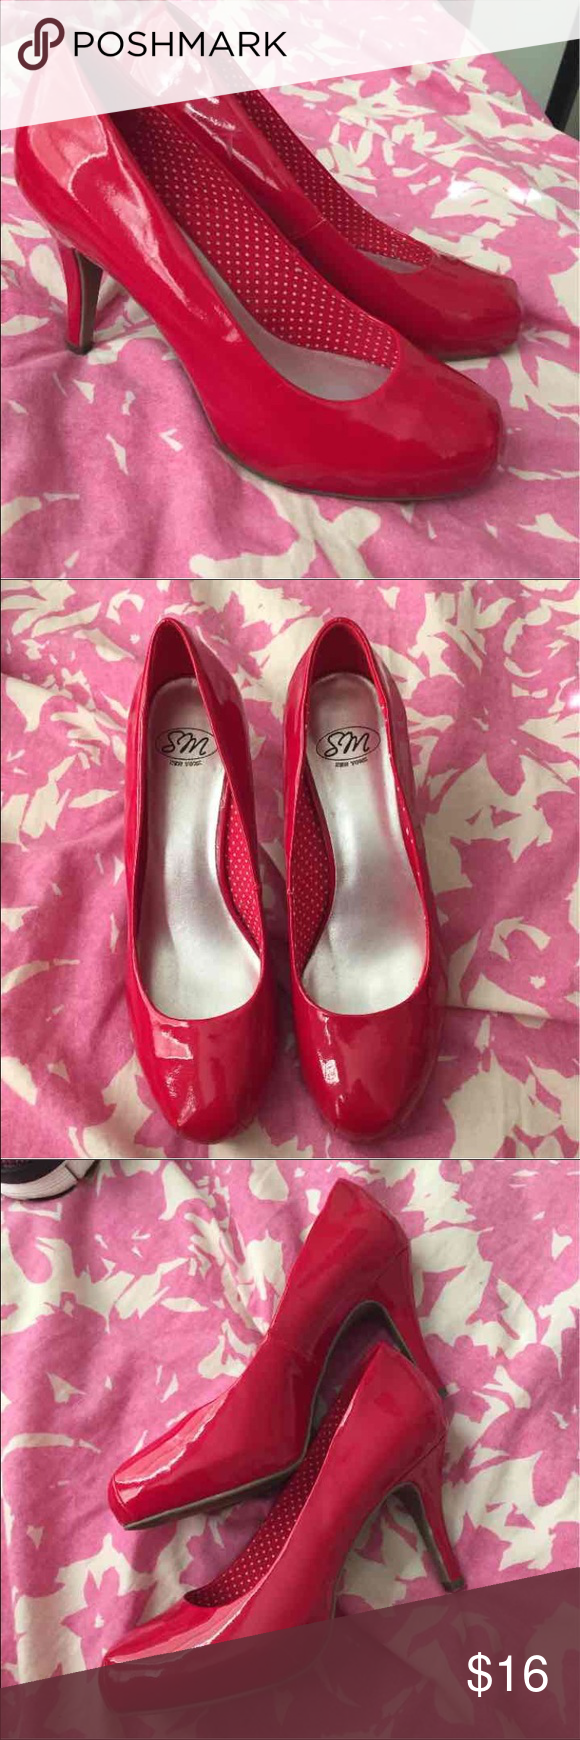 Red High Heels Size 8 I Ve Worn These Heels A Few Times But I Don T Need Them Anymore I Bought Them At Jcpenny They Are A Si Red High Heels Heels